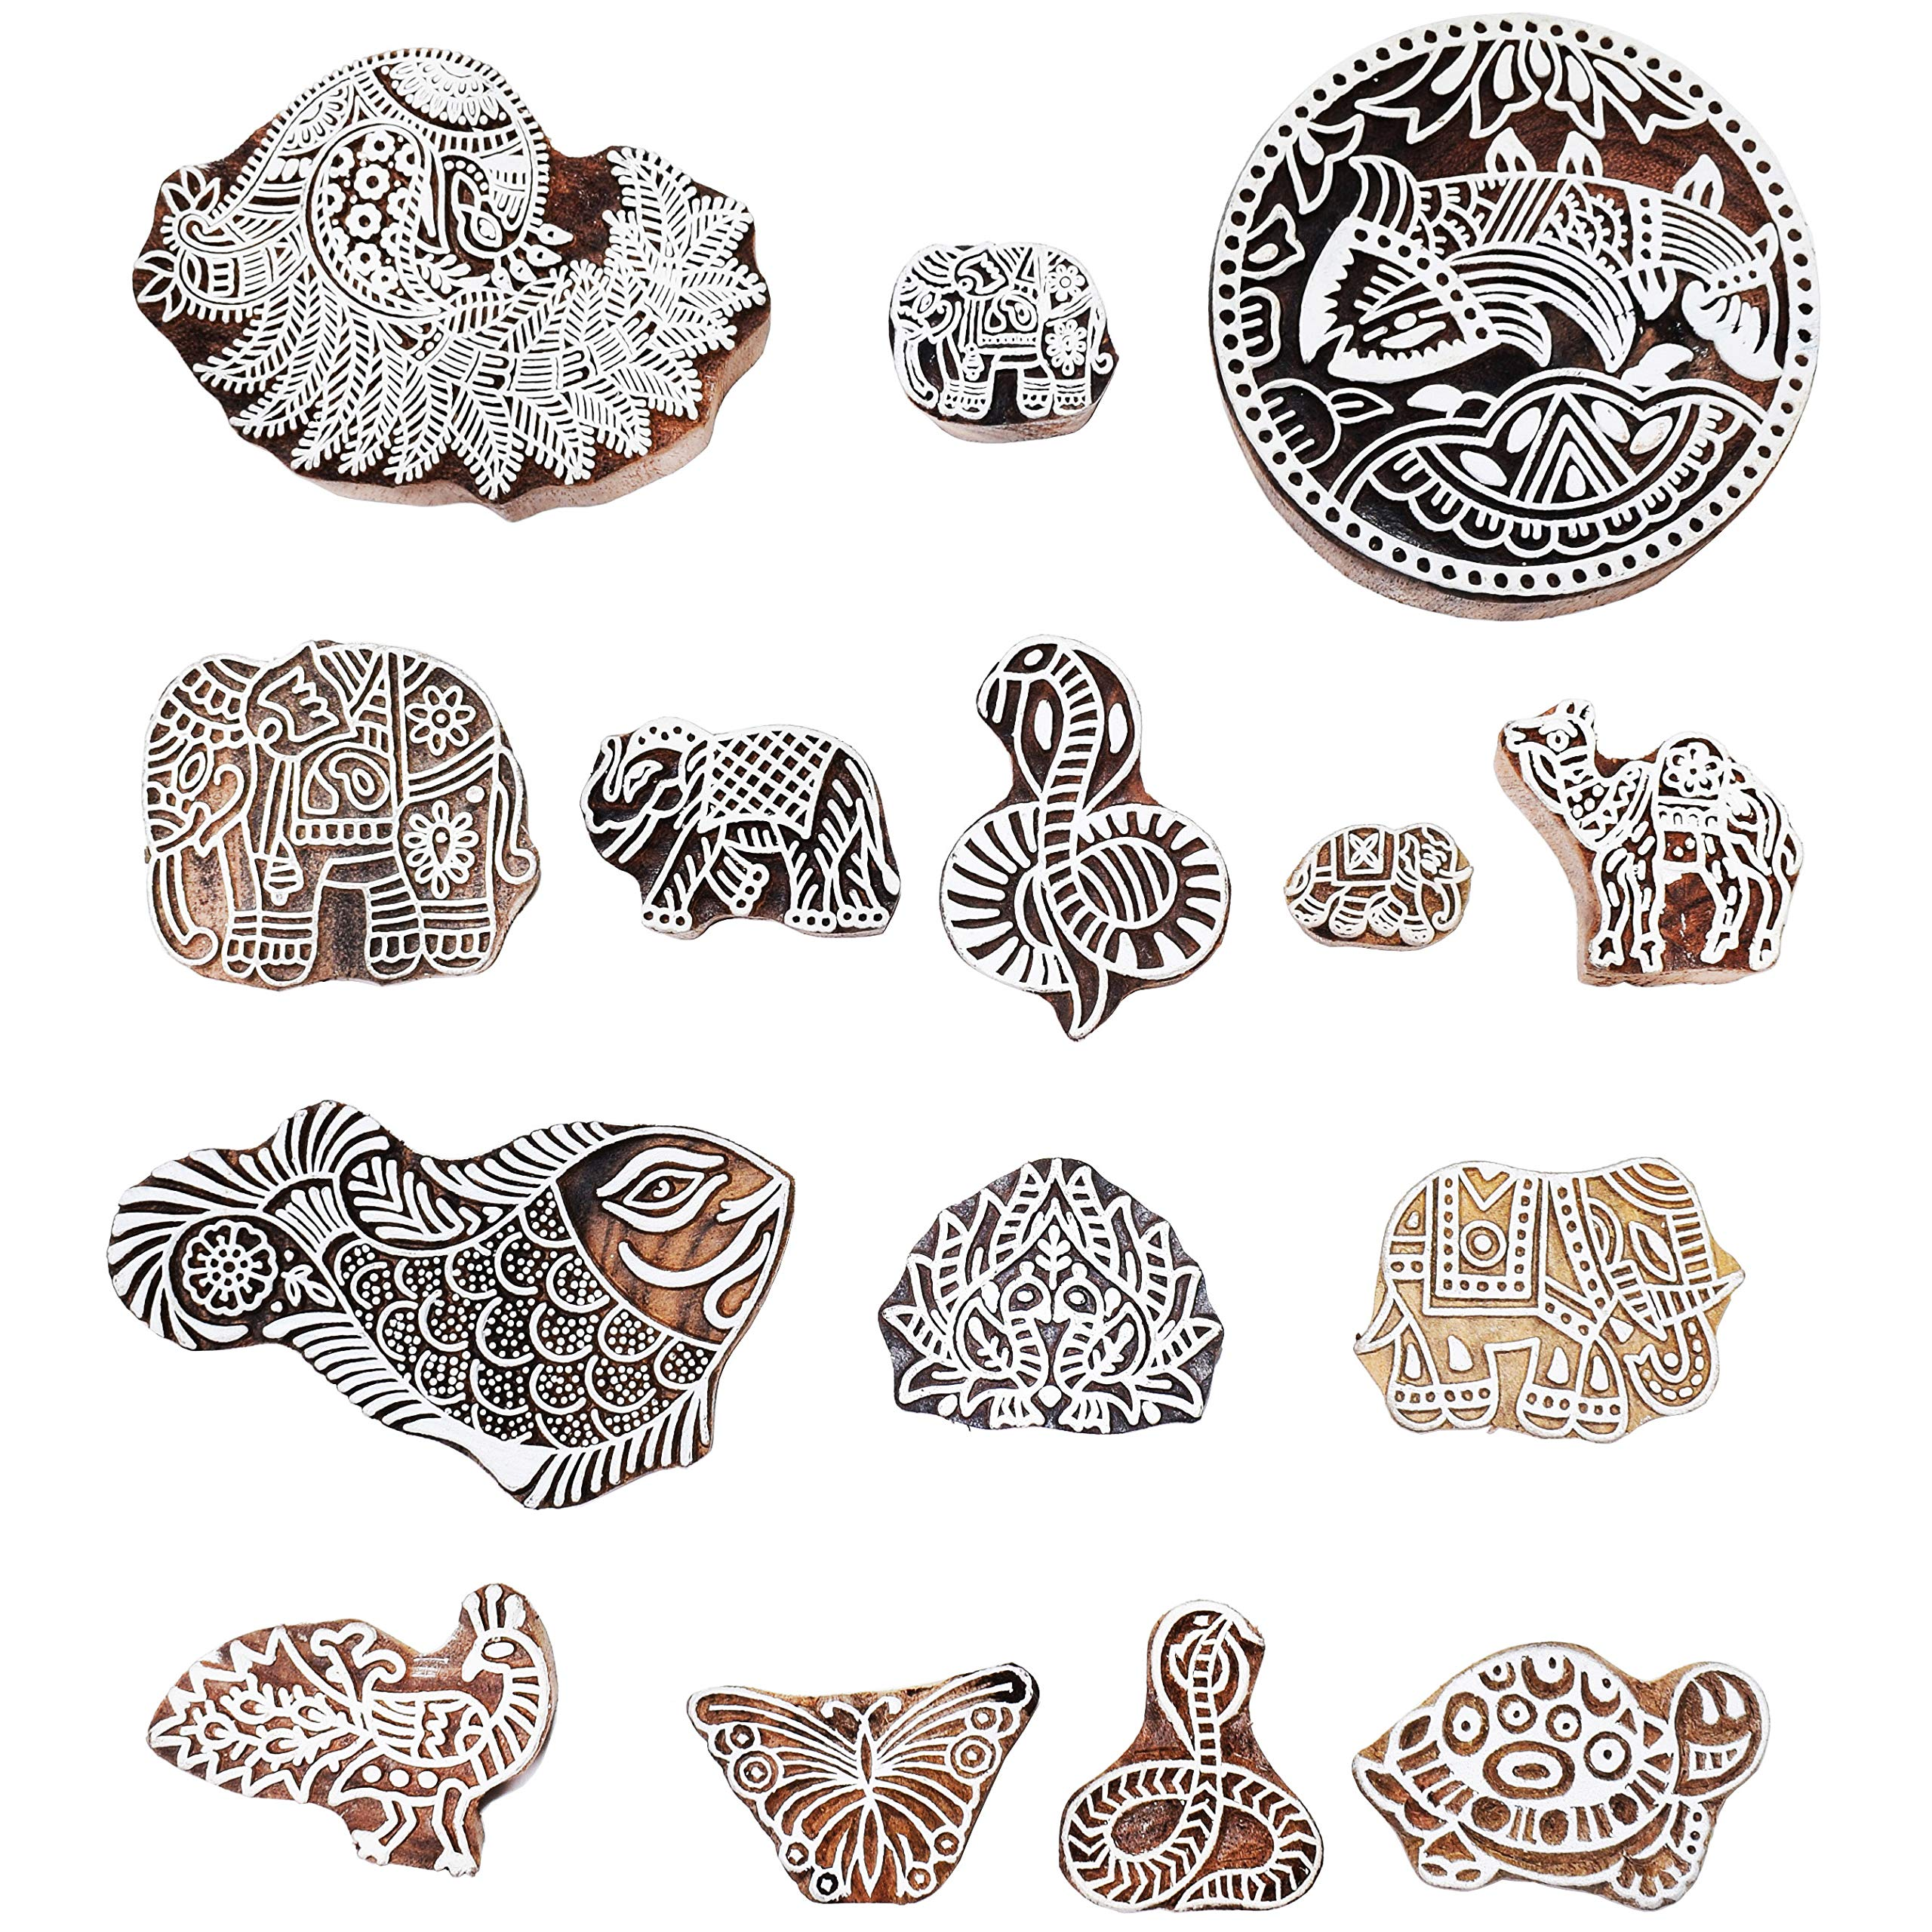 Hashcart Printing Stamps Animal Design Wooden Blocks (Set of 37) Hand-Carved for Saree Border Making Pottery Crafts Textile Printing